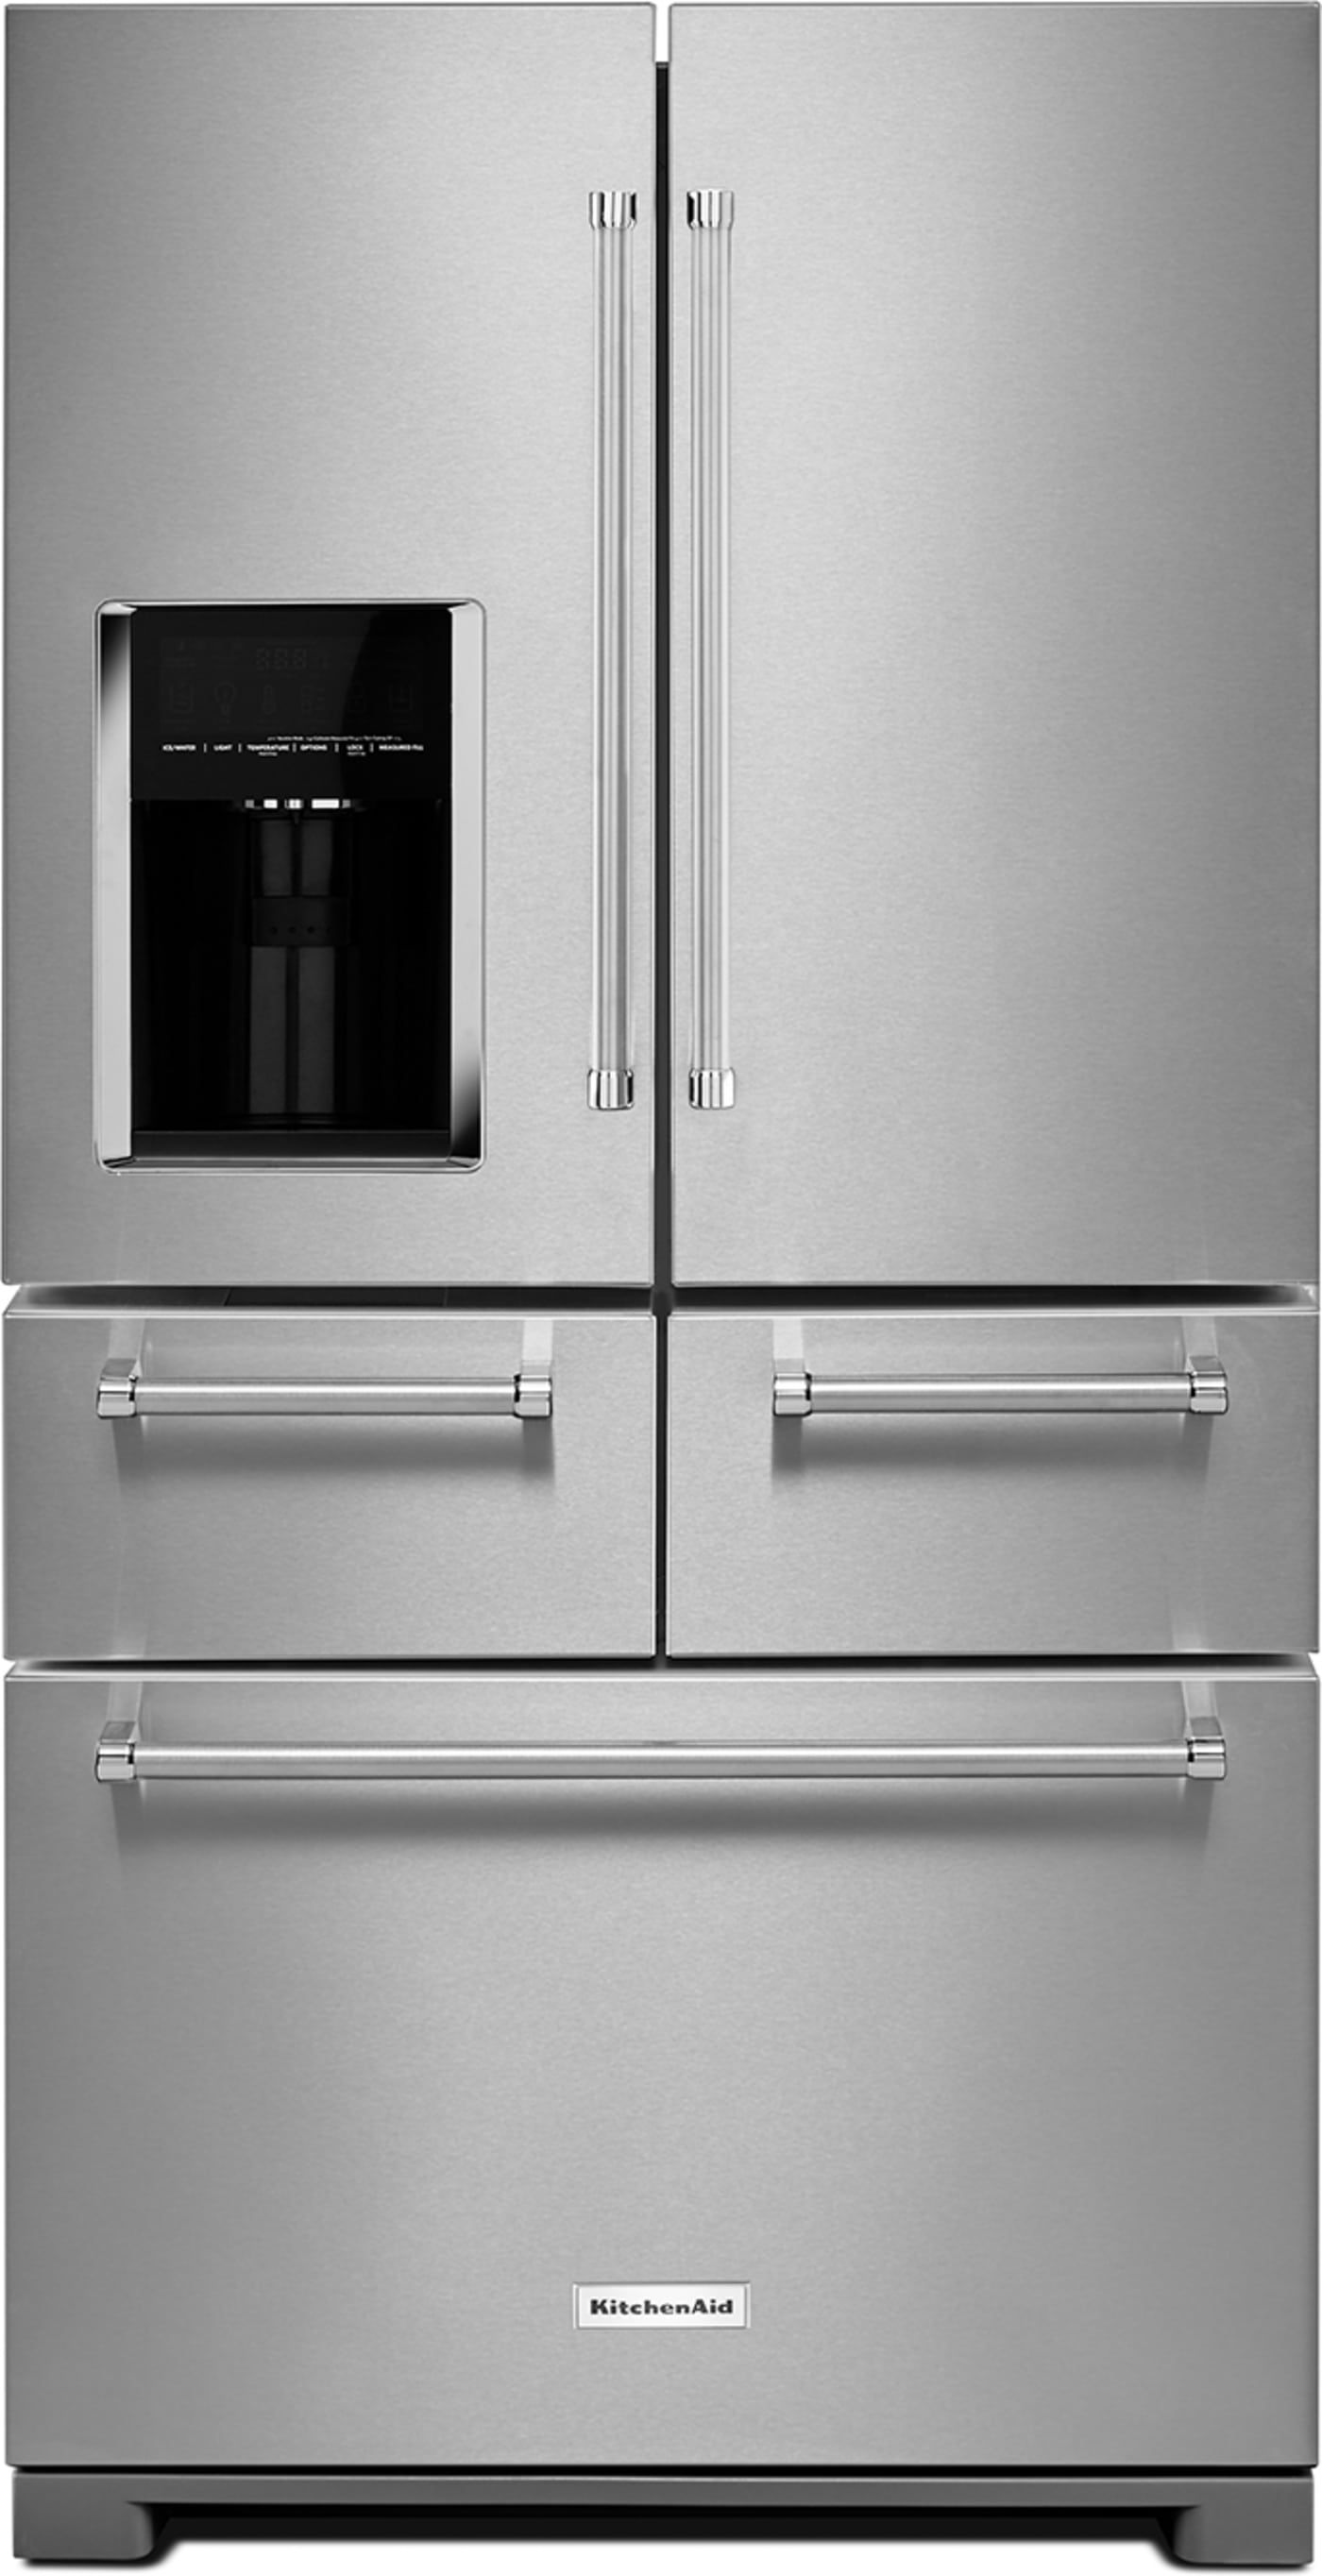 KRMF706ESS by KitchenAid French Door Refrigerators